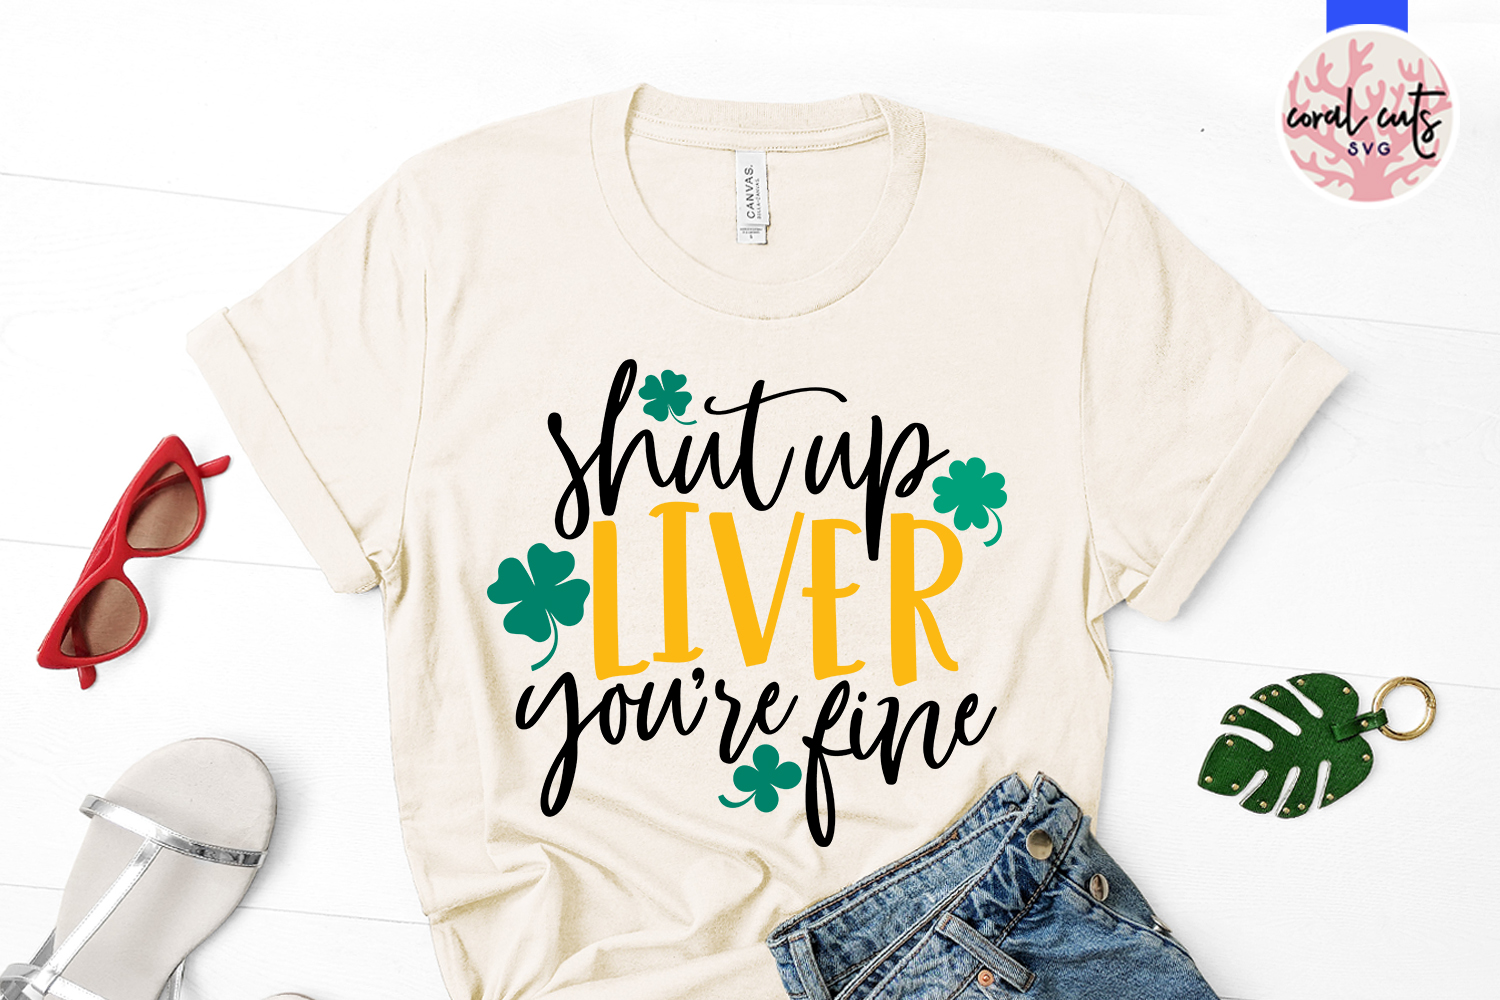 Shut up liver you're fine - St. Patrick's Day SVG EPS DXF example image 2